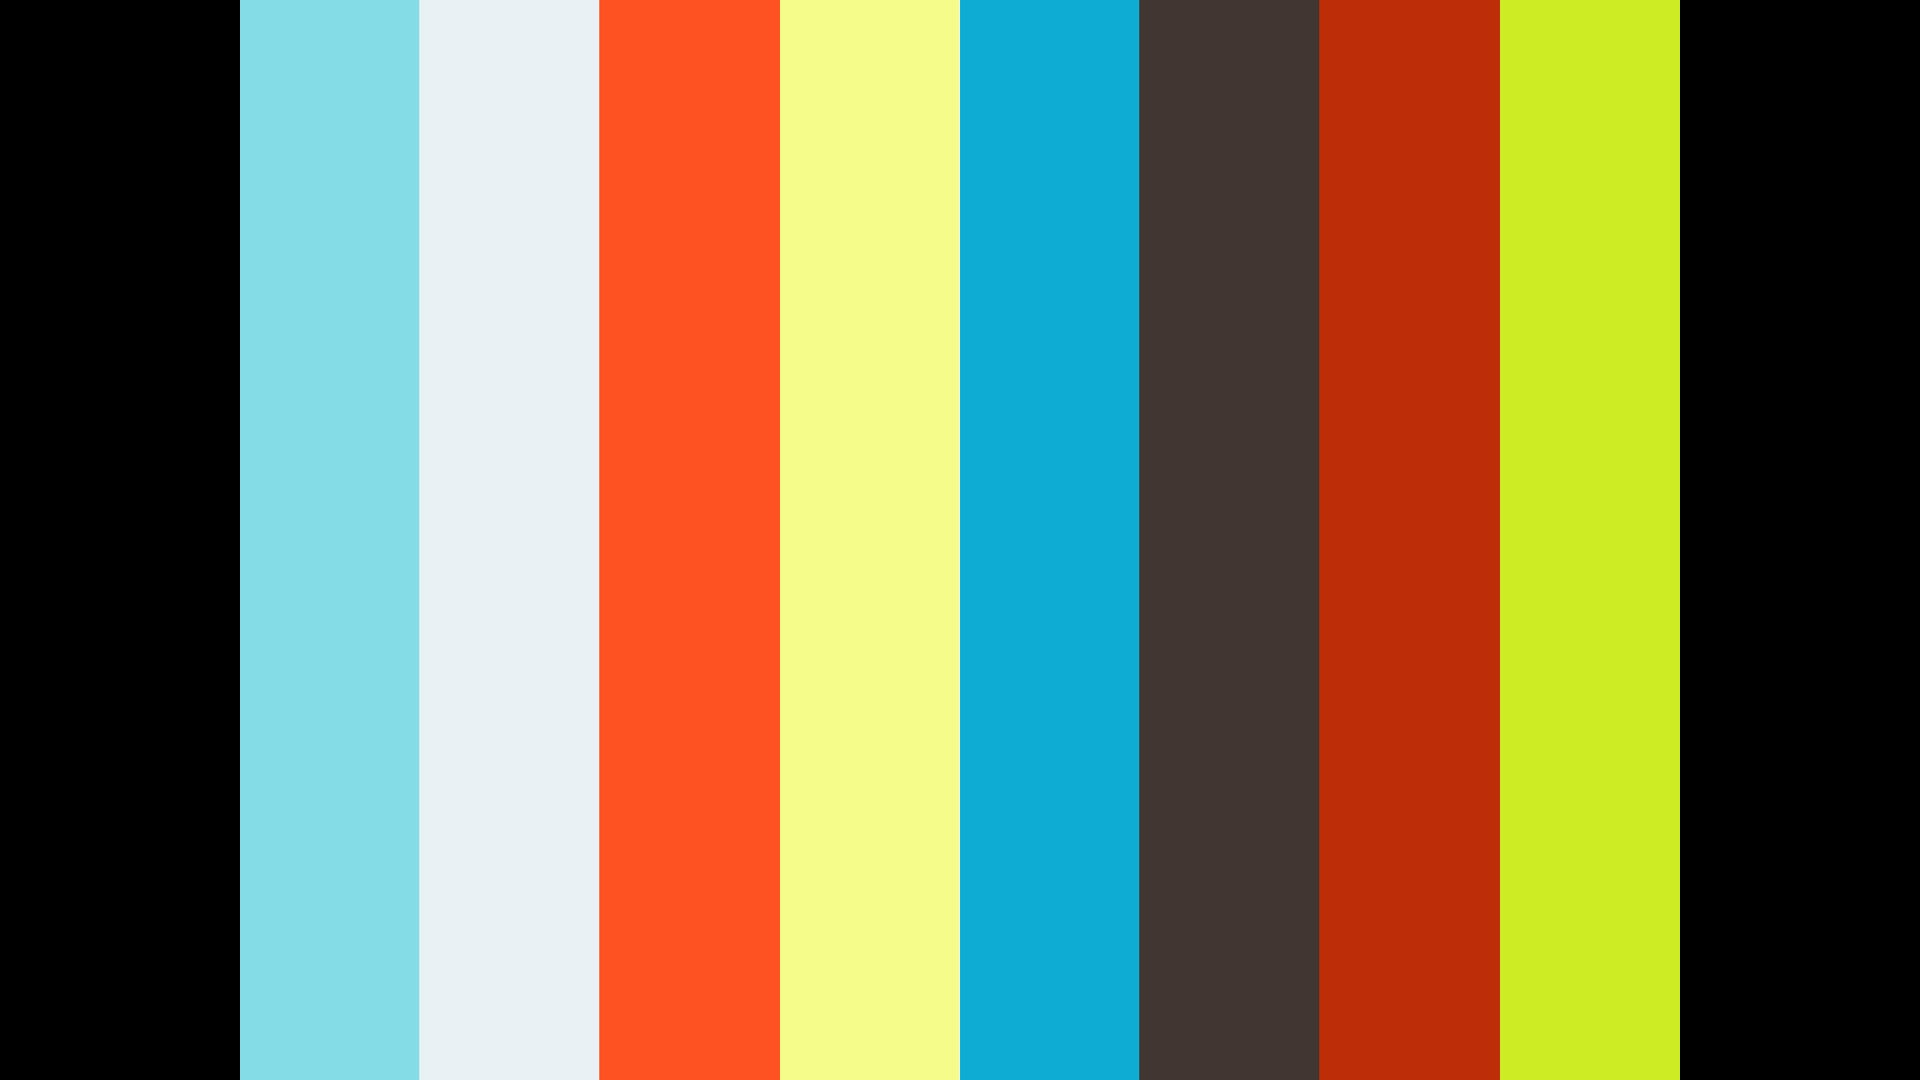 Vídeo marketing para hoteles | Videocontent Tu vídeo desde 350€ | 578621226 1920x1080?r=pad | videos-de-producto, videos-corporativos-videos, video, video-promocional, blogs, actualidad